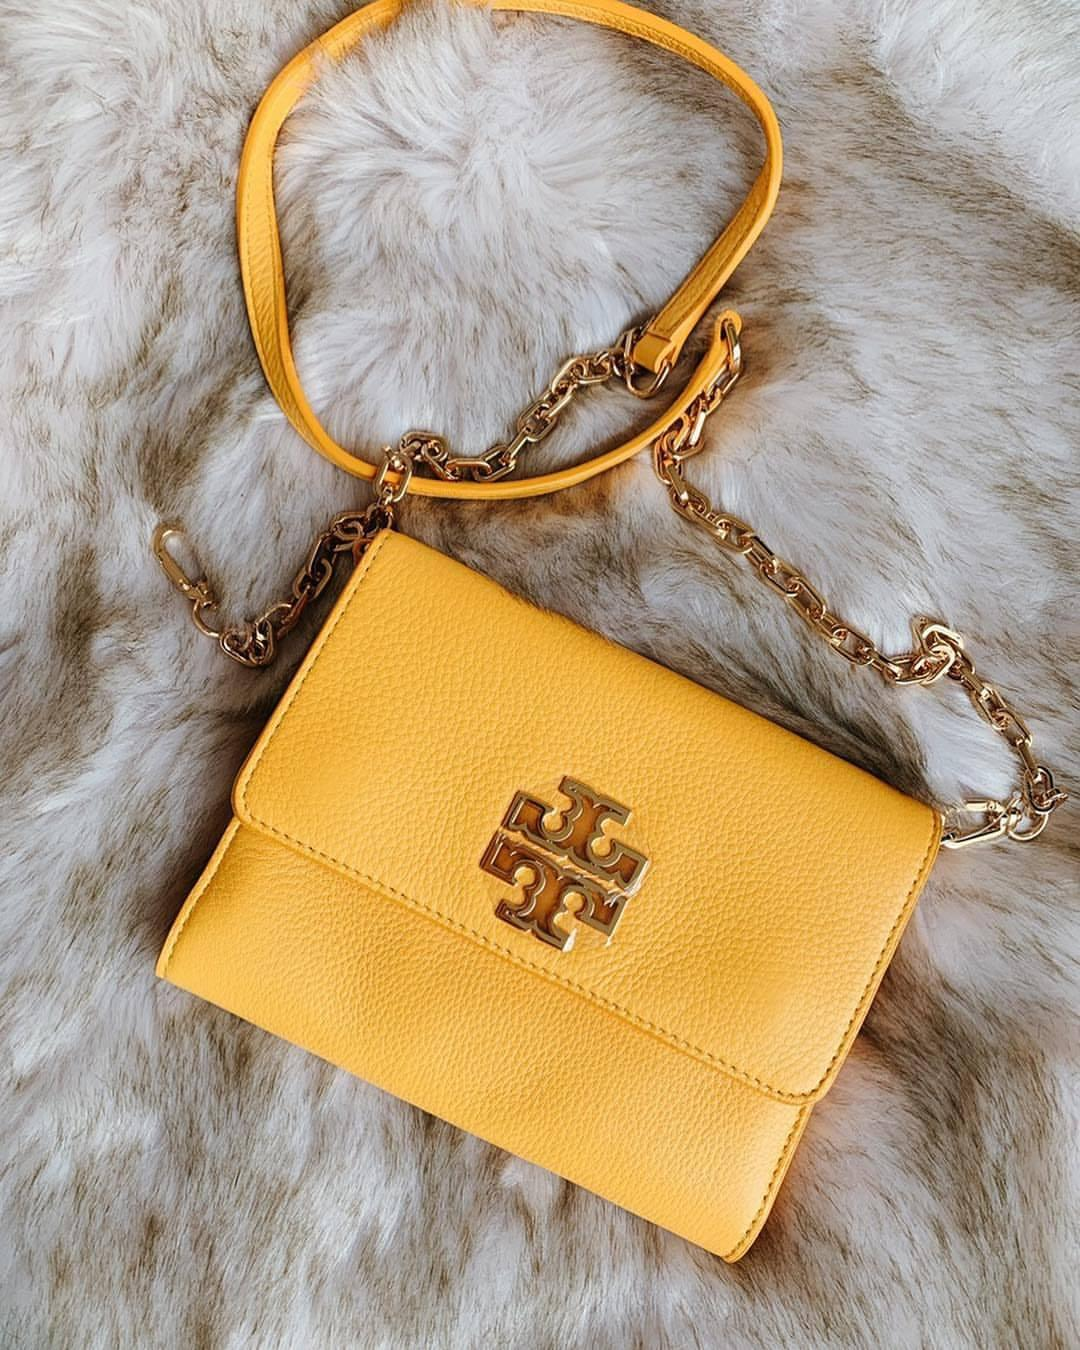 Tory Burch BRITTEN CHAIN WALLET (CASSIA)